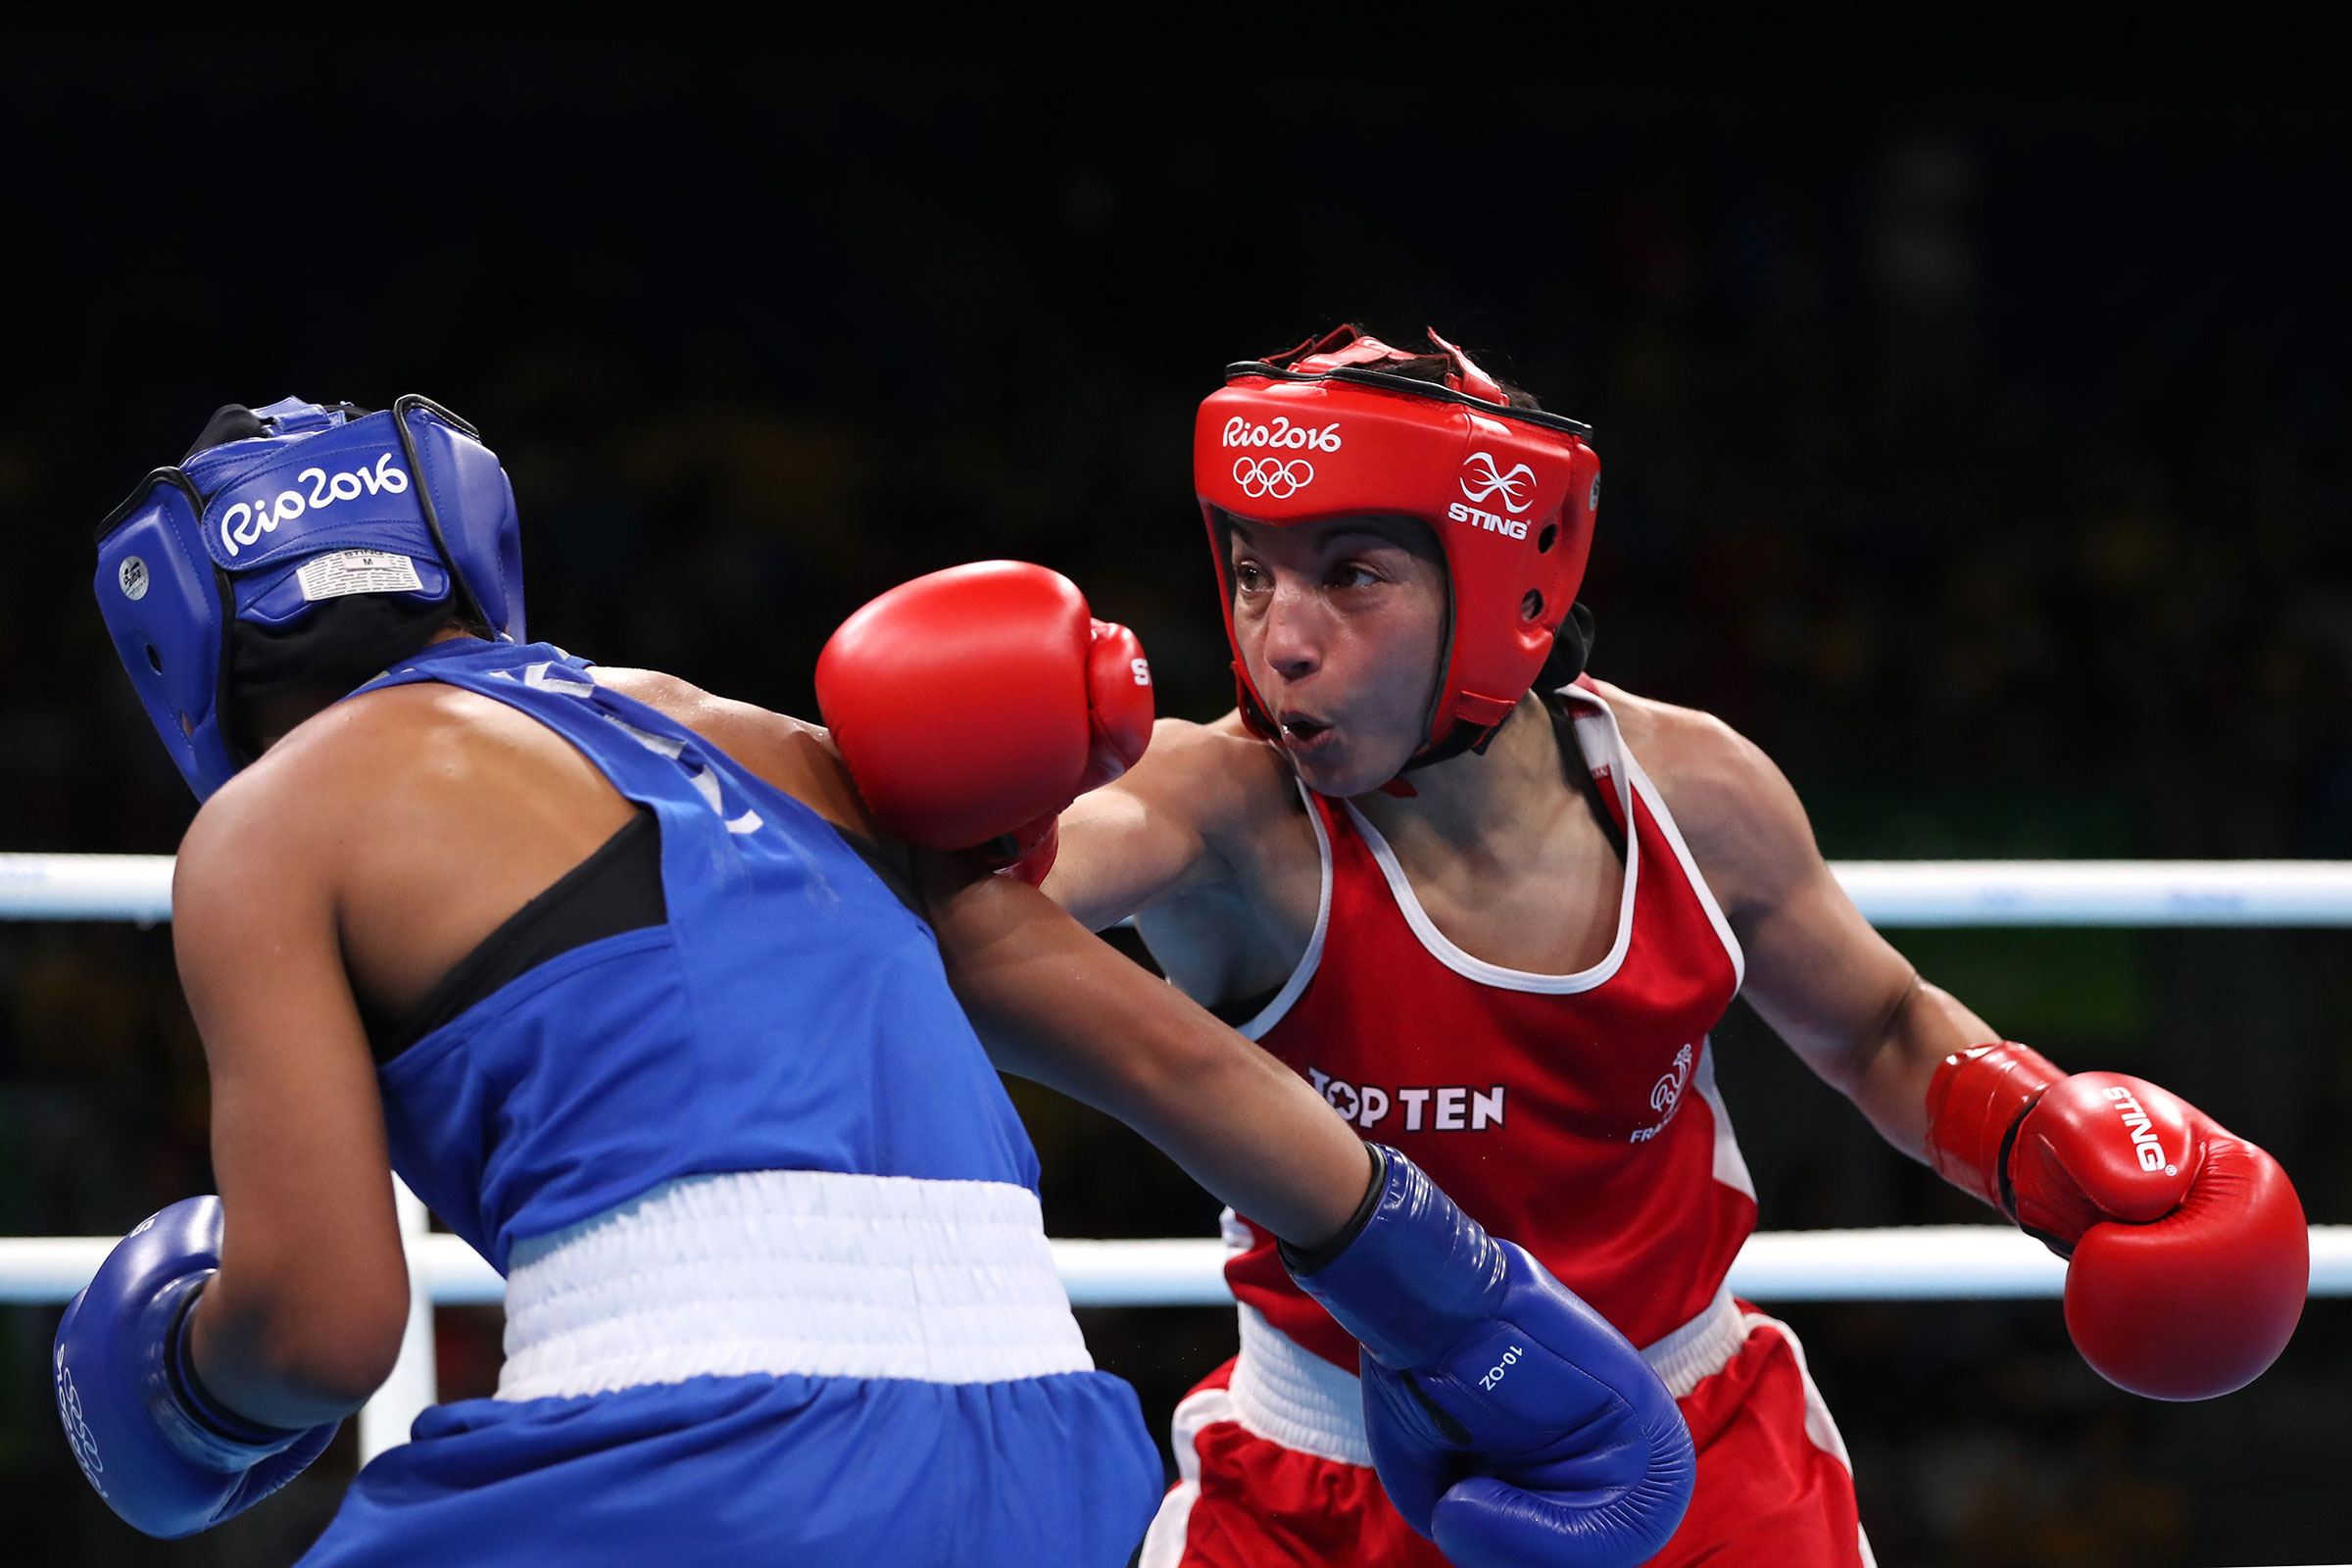 Boxing - 51kg Fly weight Women